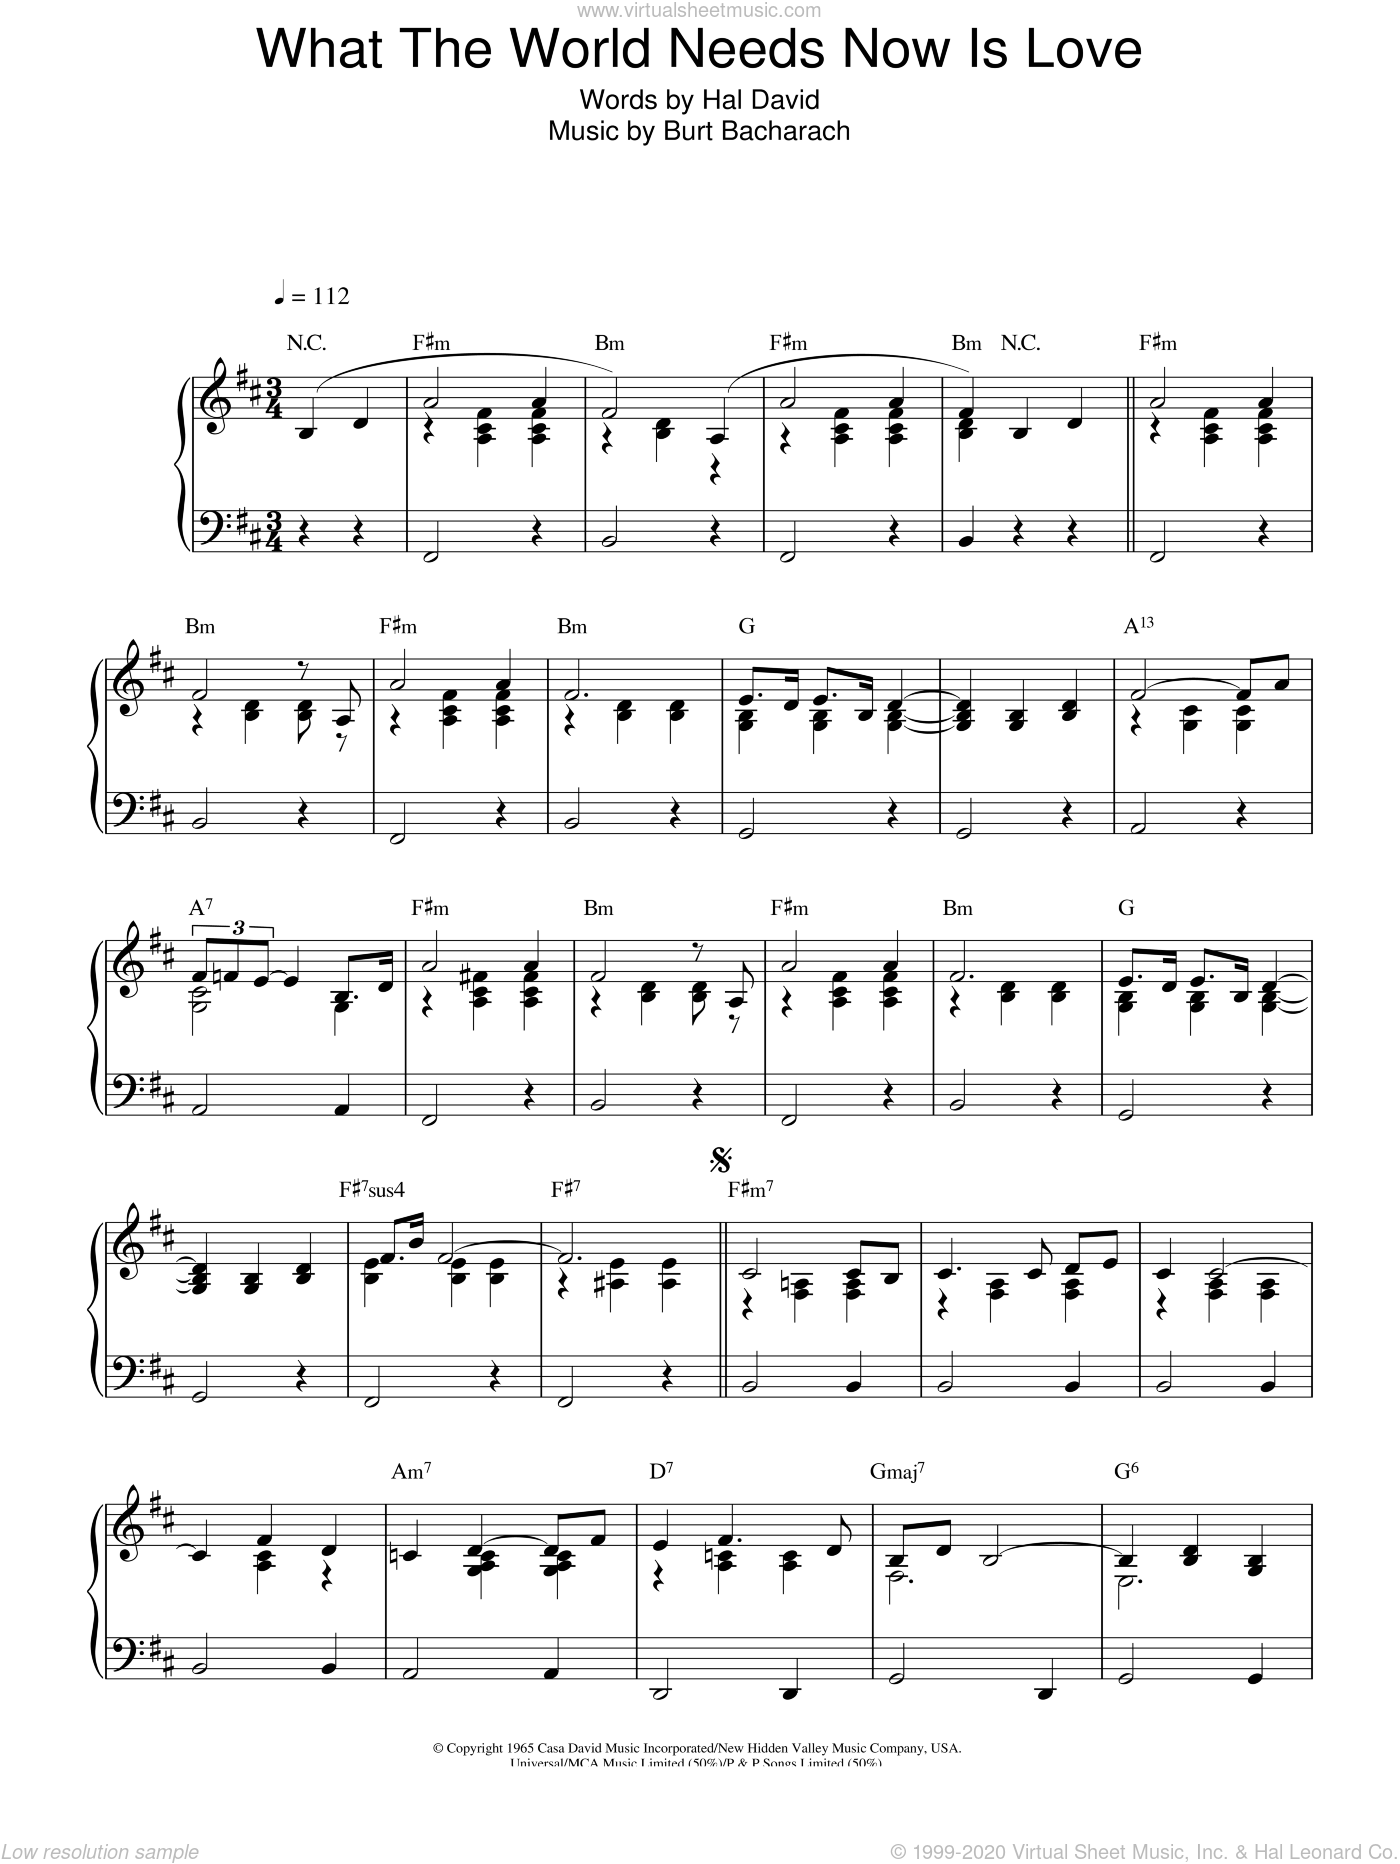 What The World Needs Now Is Love sheet music for piano solo by Bacharach & David, Stacey Kent, Burt Bacharach and Hal David, intermediate skill level